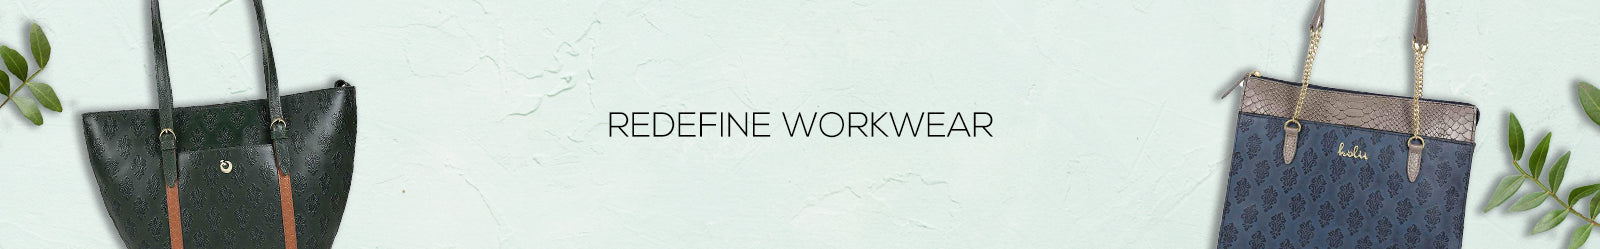 REDEFINE WORKWEAR FOR WOMEN